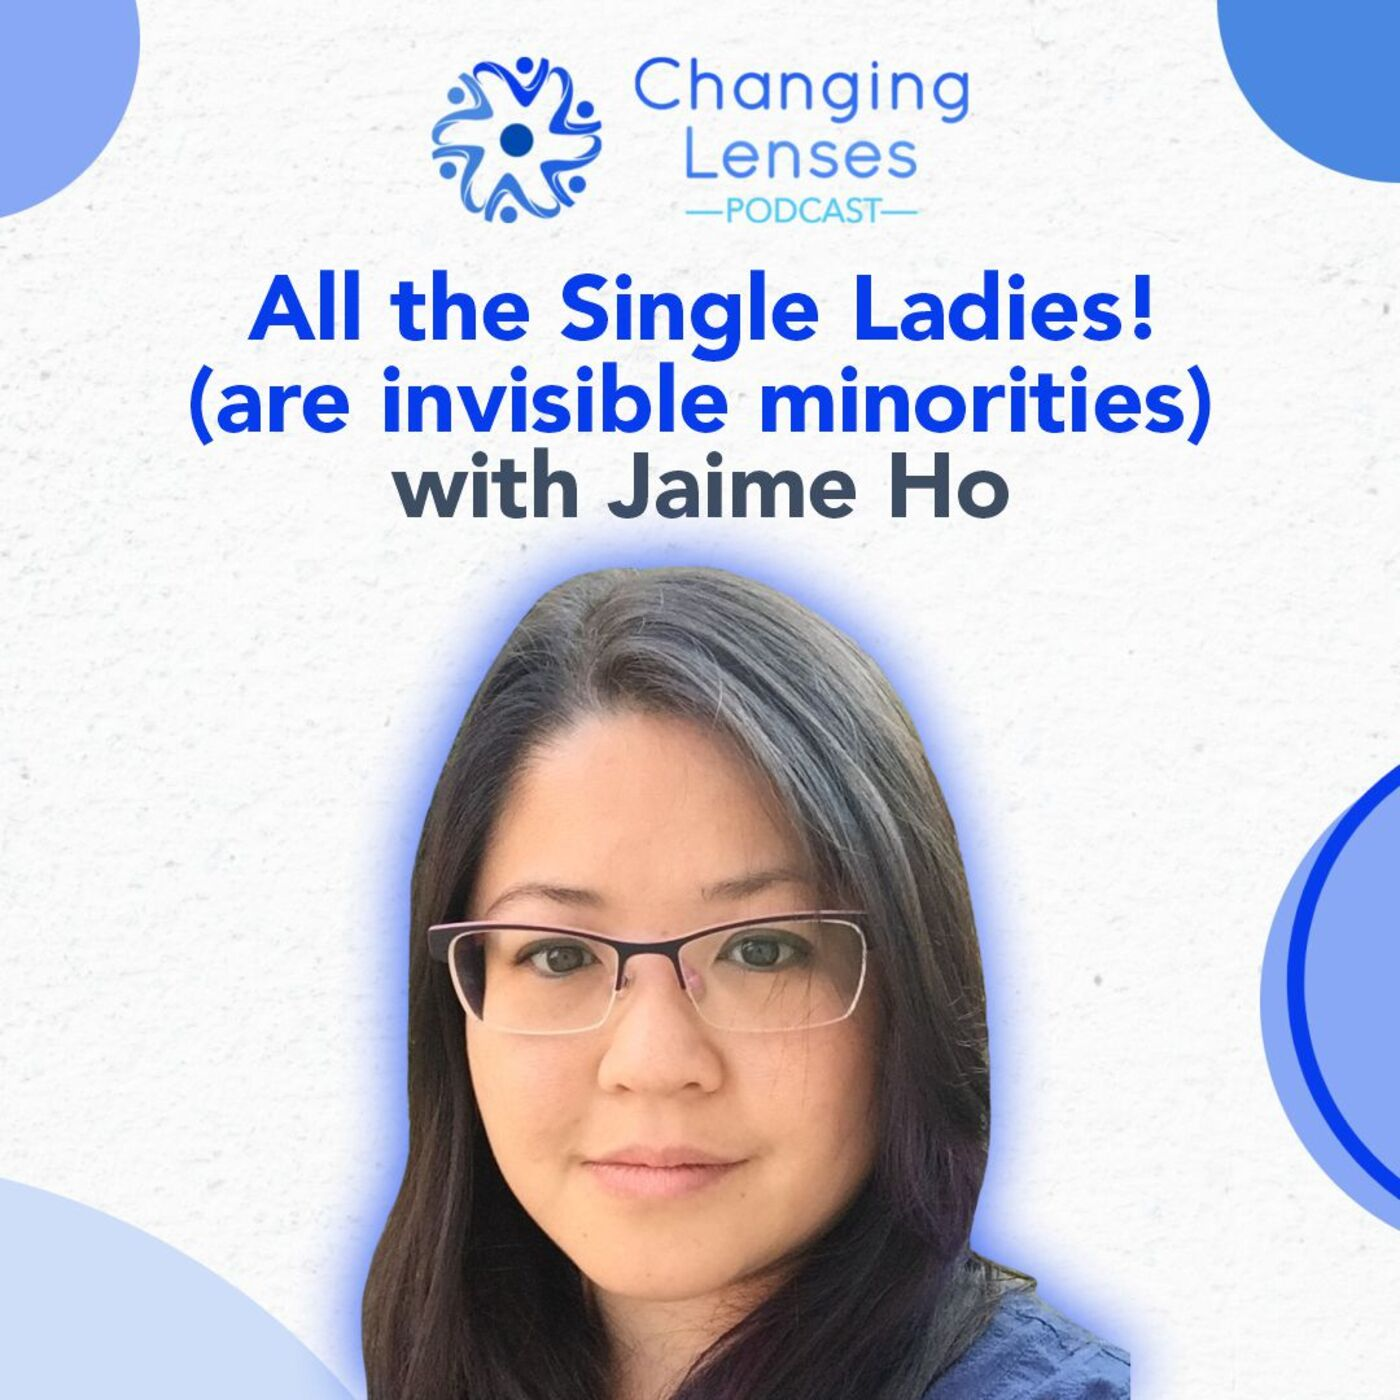 Ep20: All the Single Ladies (are invisible minorities), with Jaime Ho